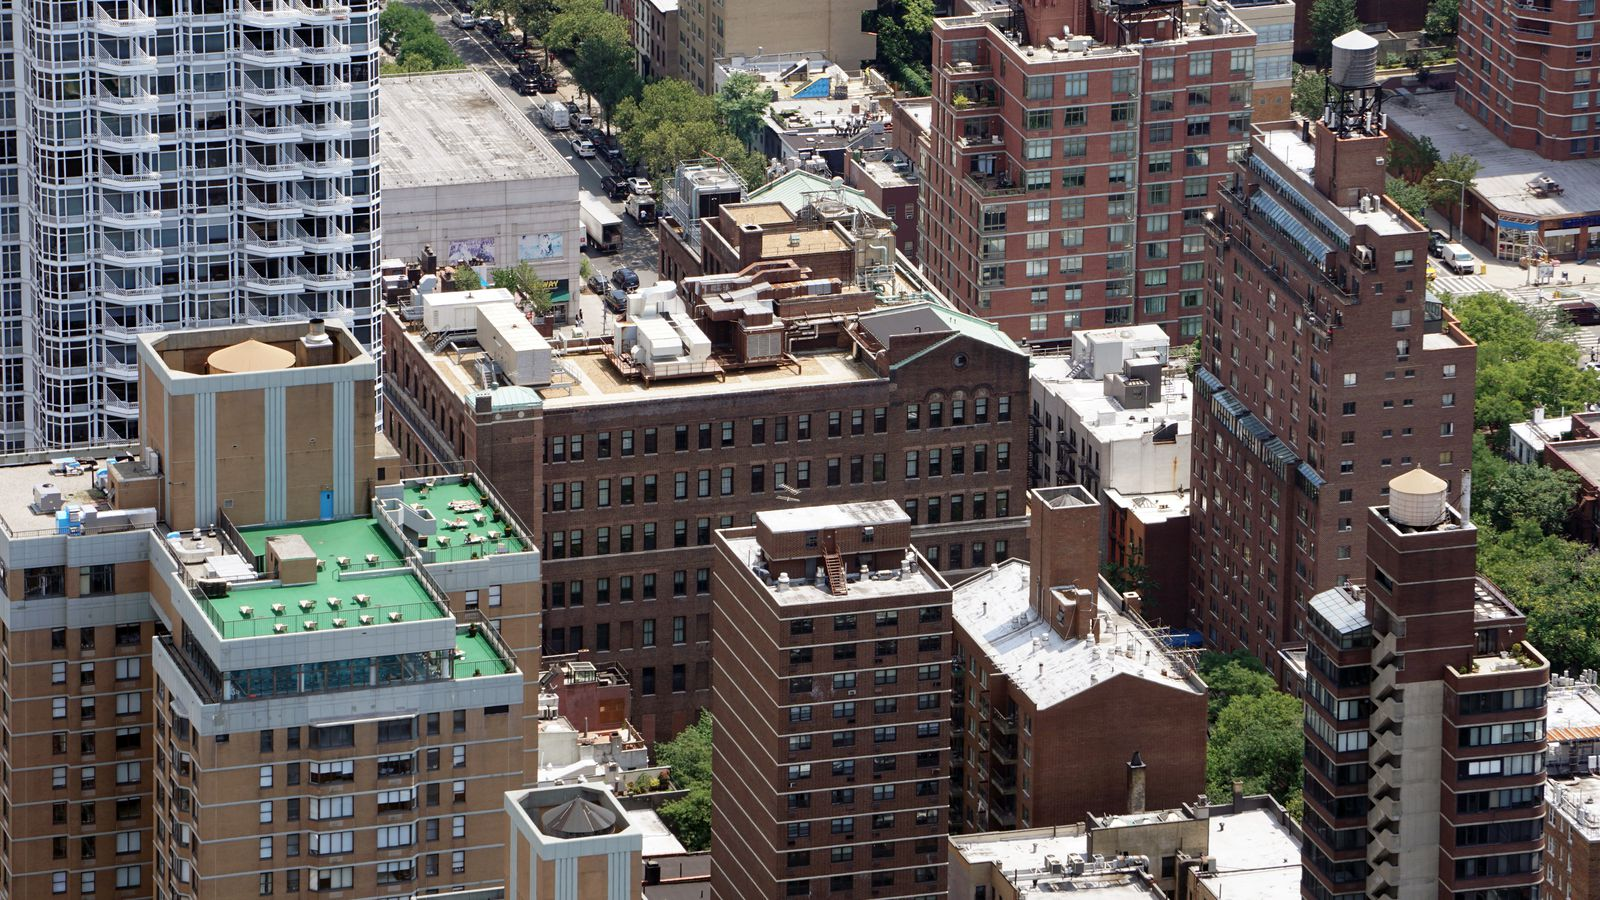 Low Income Housing Affect Property Values